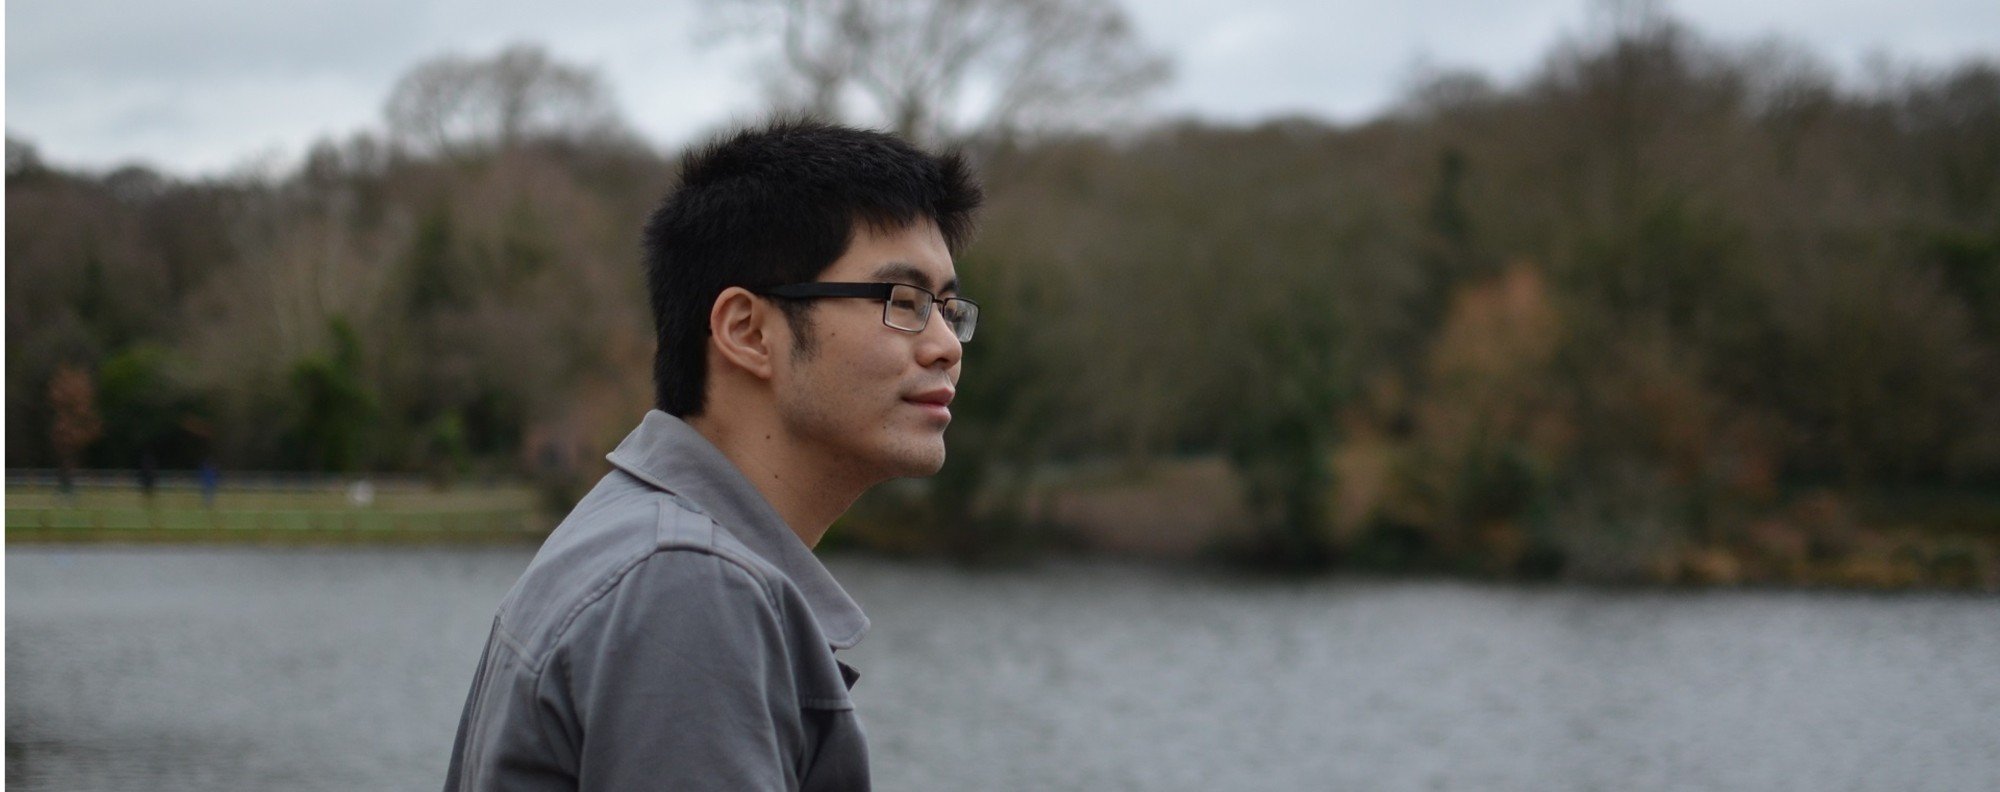 British comedian Ken Cheng. Picture: courtesy of Ken Cheng